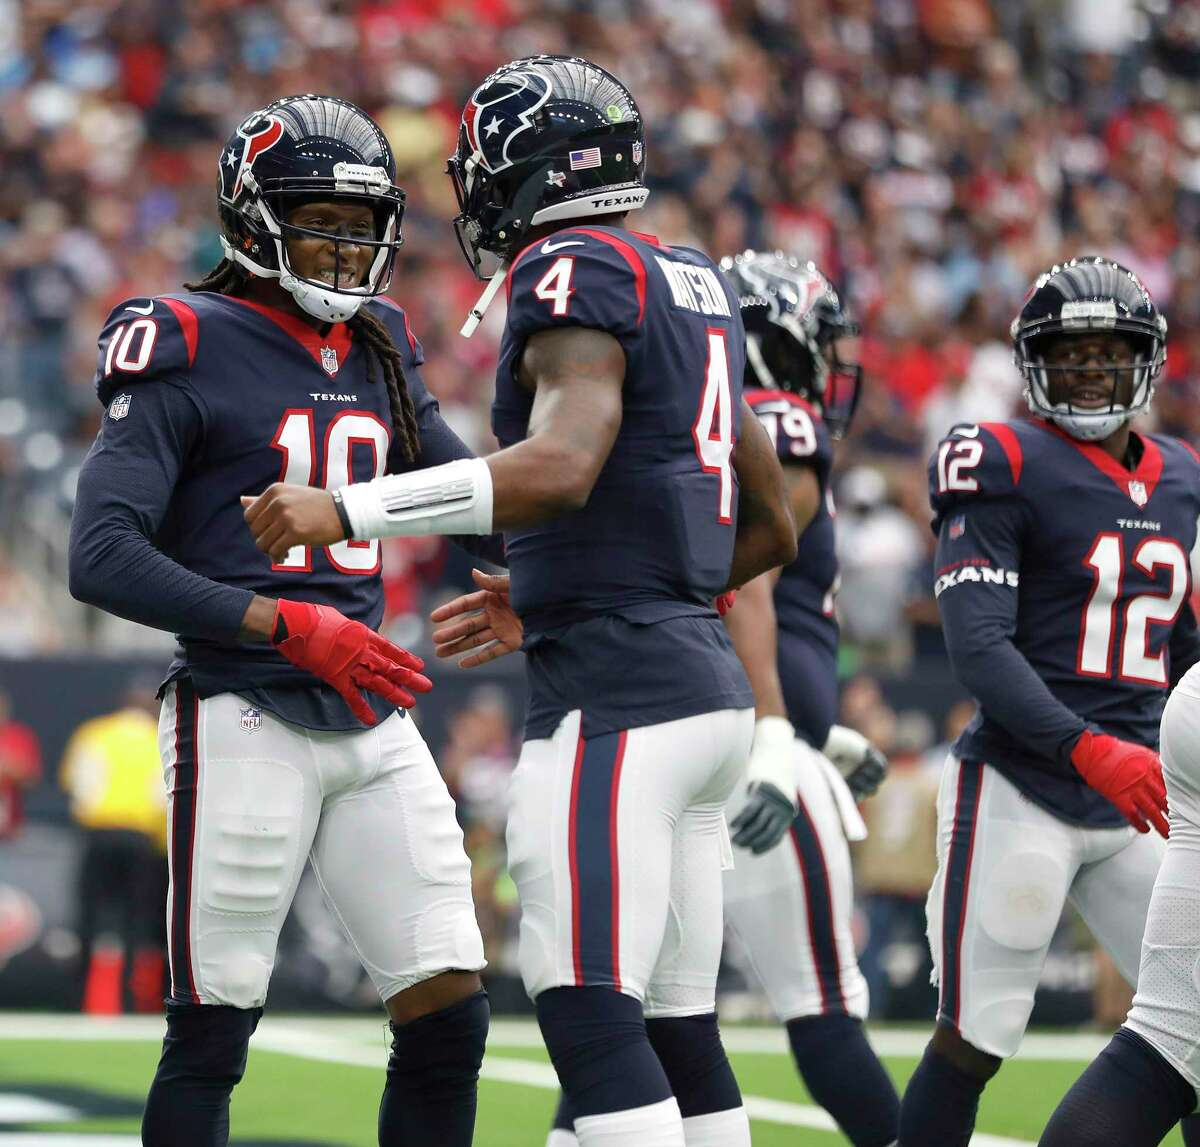 Houston Texans wide receiver DeAndre Hopkins (10) celebrates his touchdown with quarterback Deshaun Watson (4) during the first quarter of an NFL football game at NRG Stadium, Sunday, Oct. 1, 2017, in Houston.